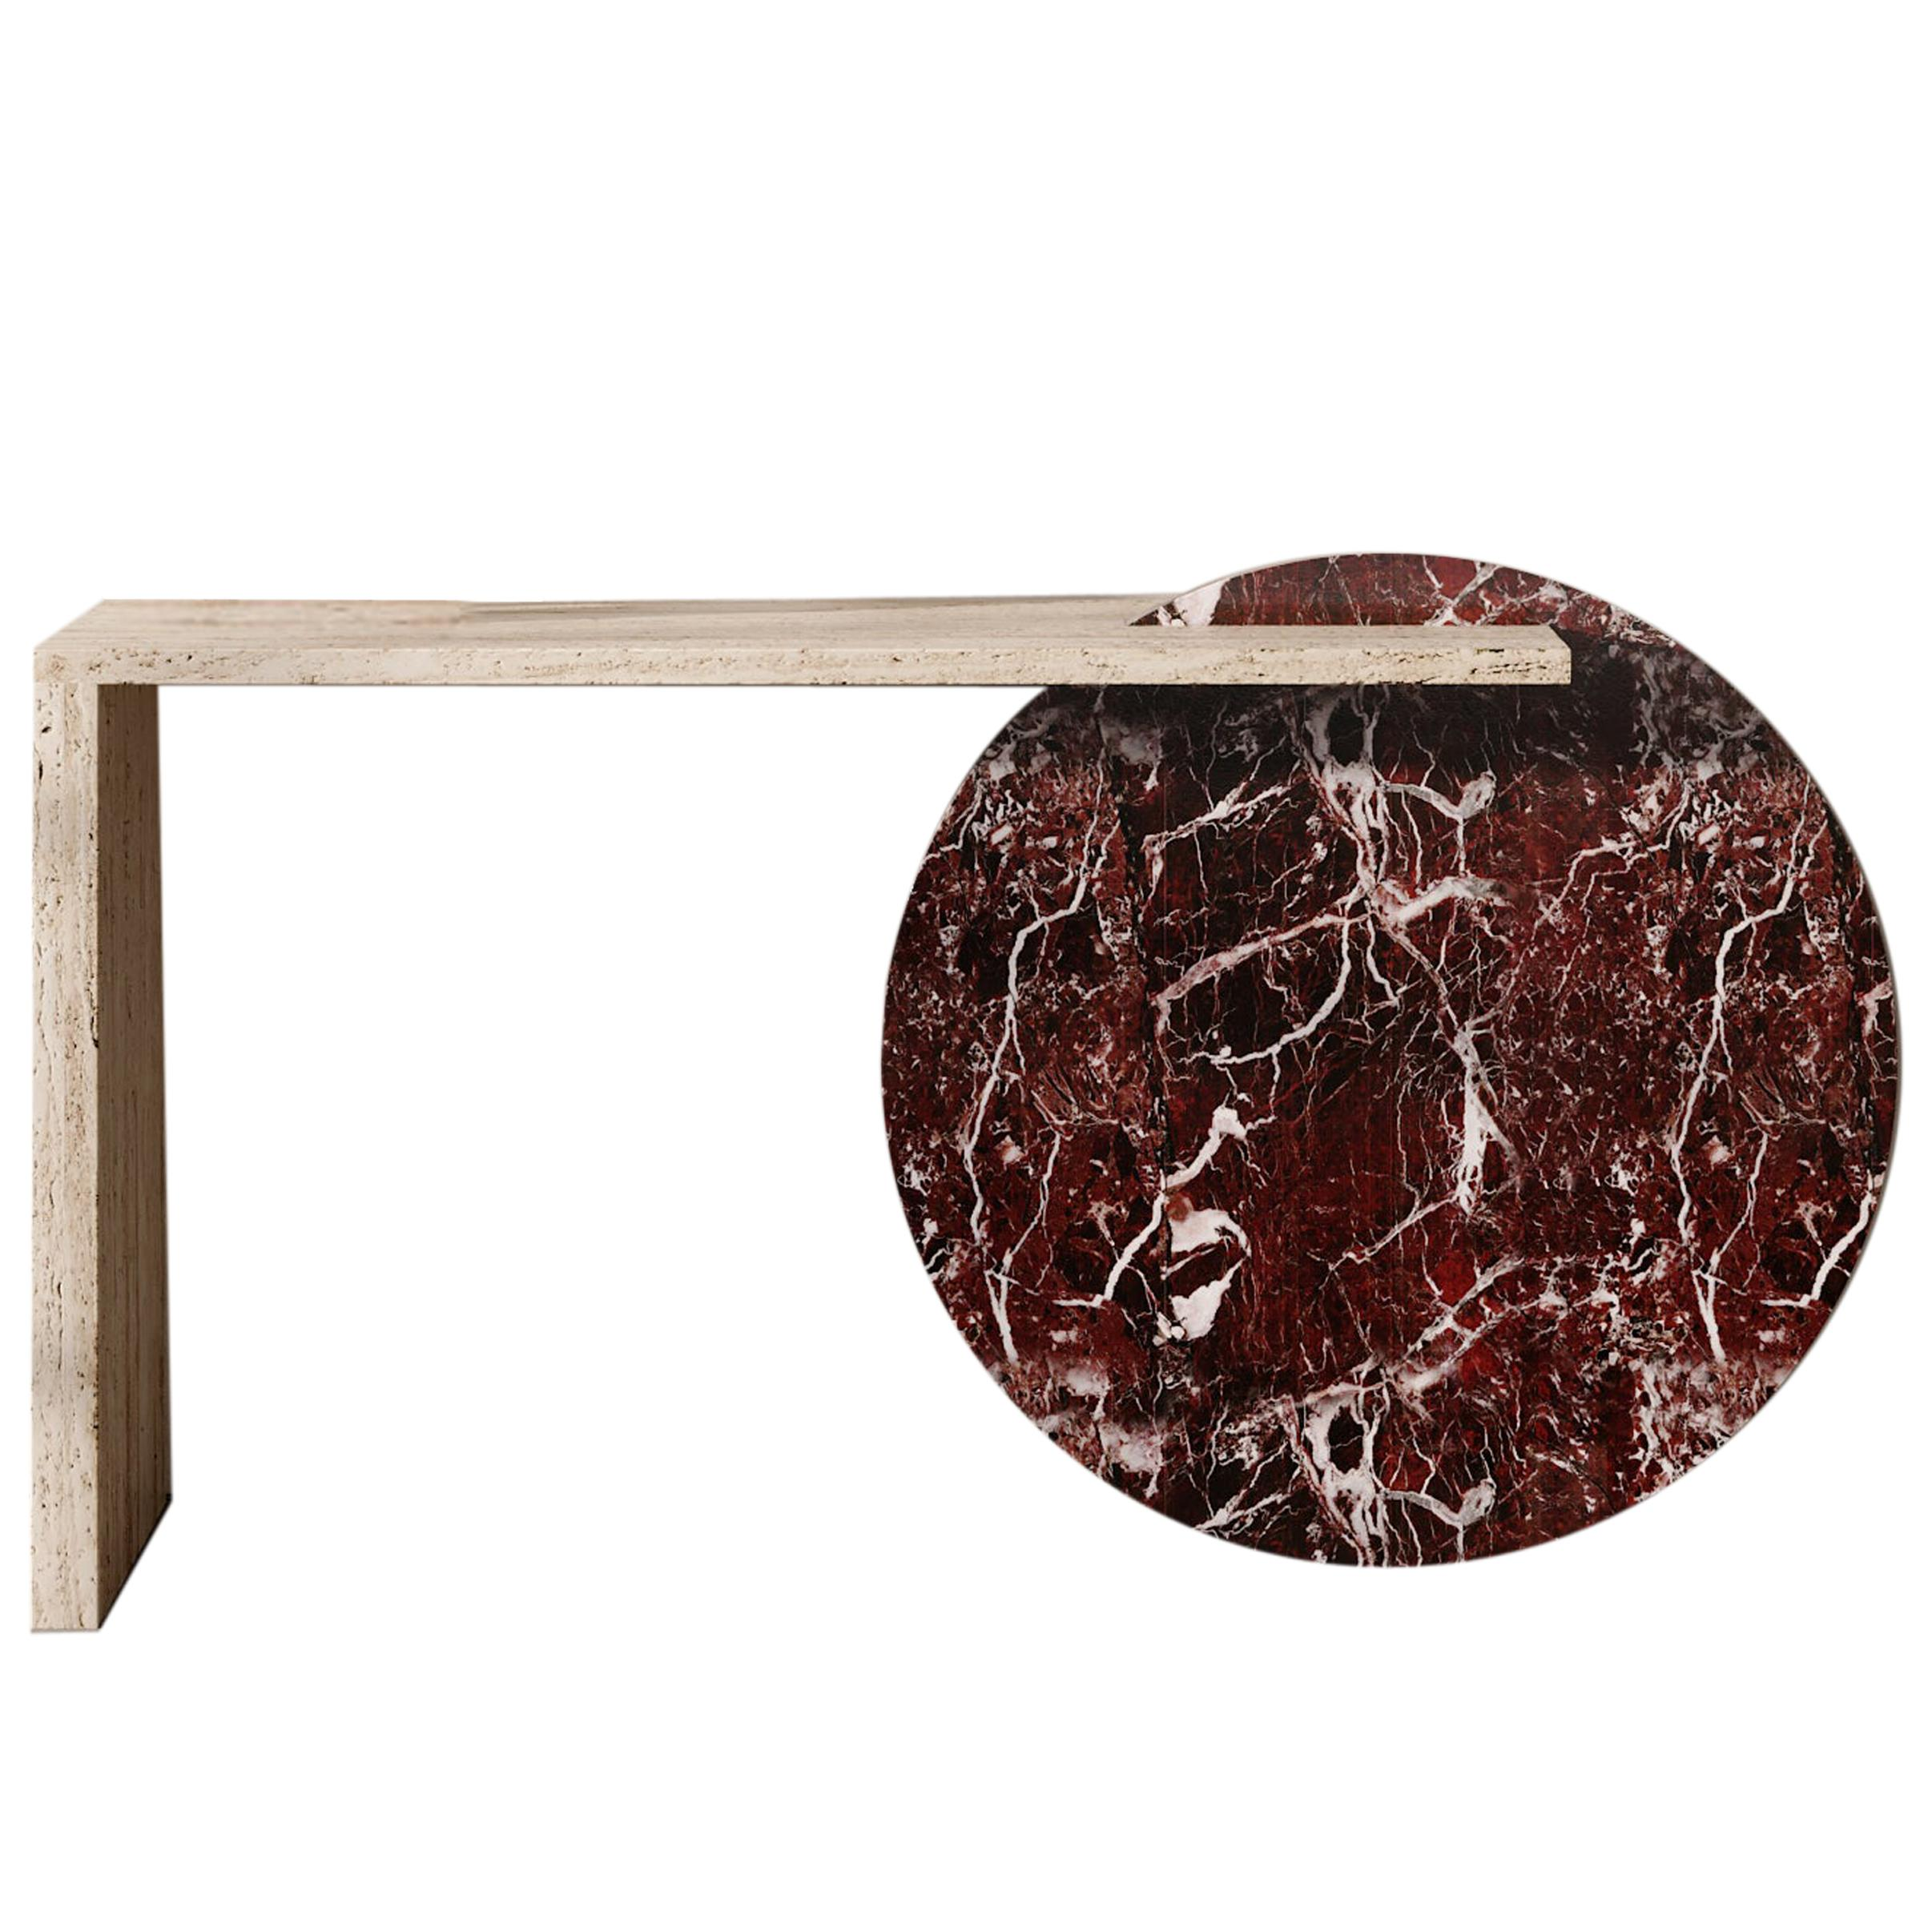 Contemporary Architectural Console Marble Table, by Chapter 101